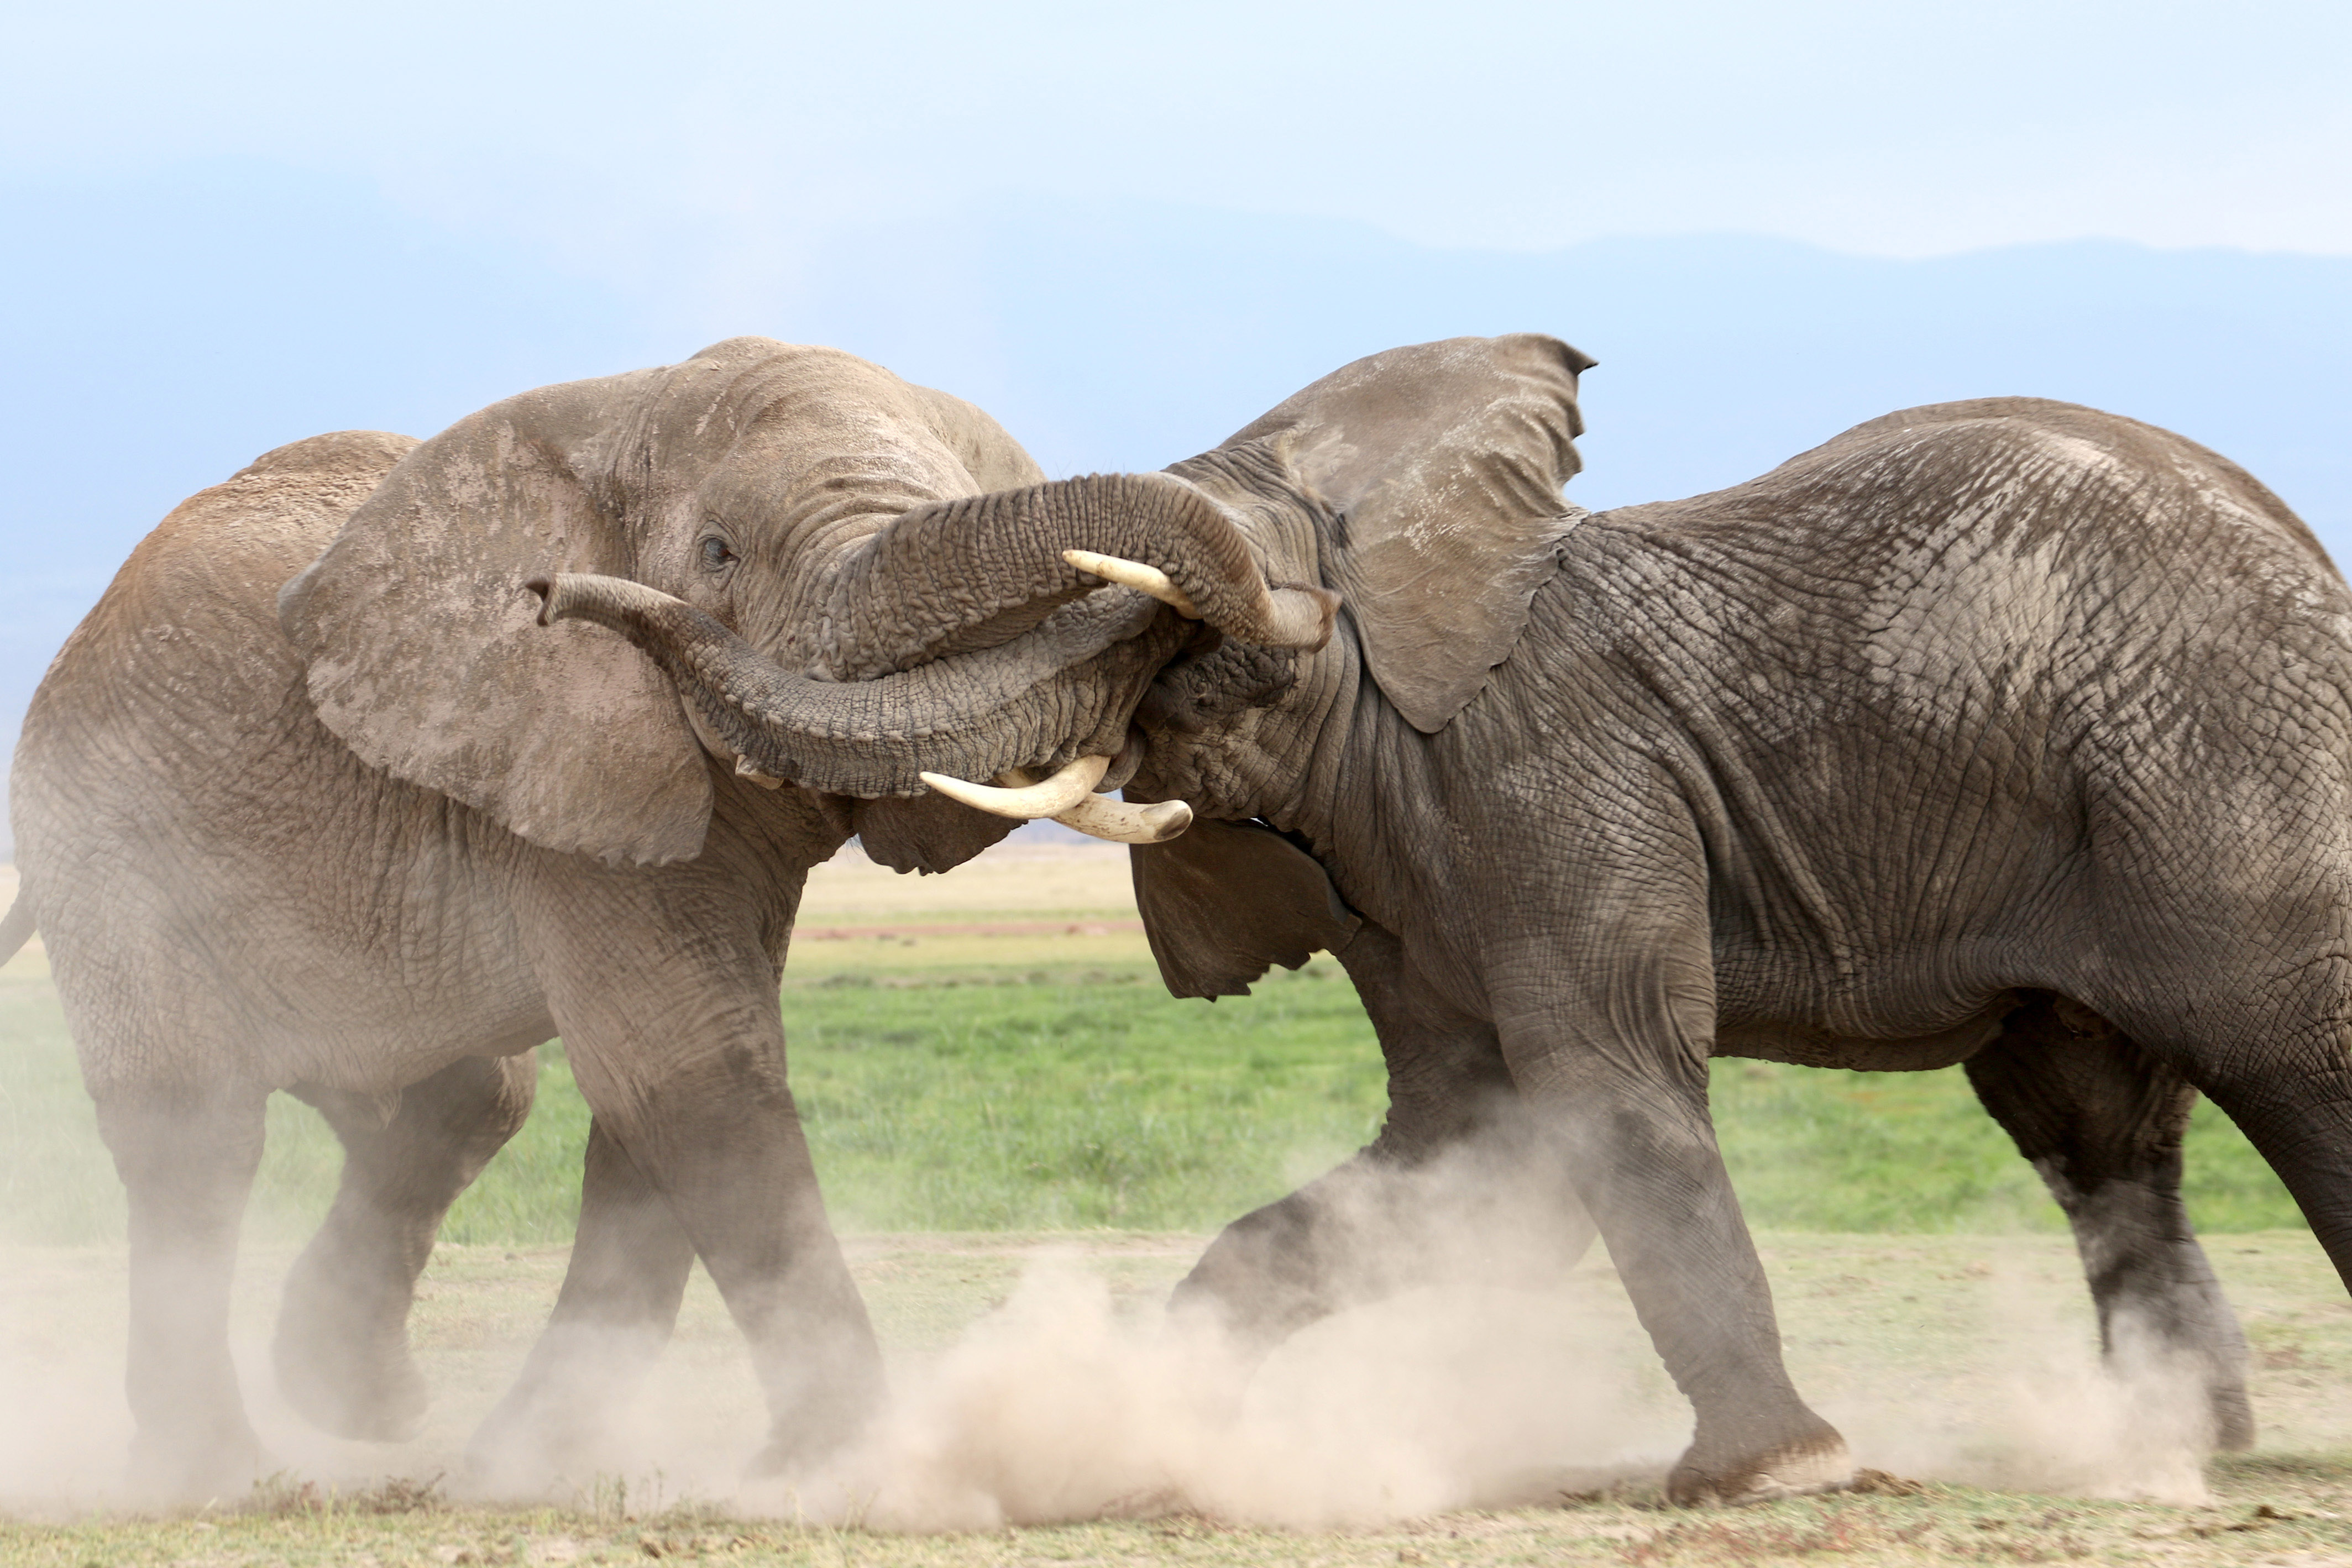 you're in for a trunking, elephants battle for dominance - caters